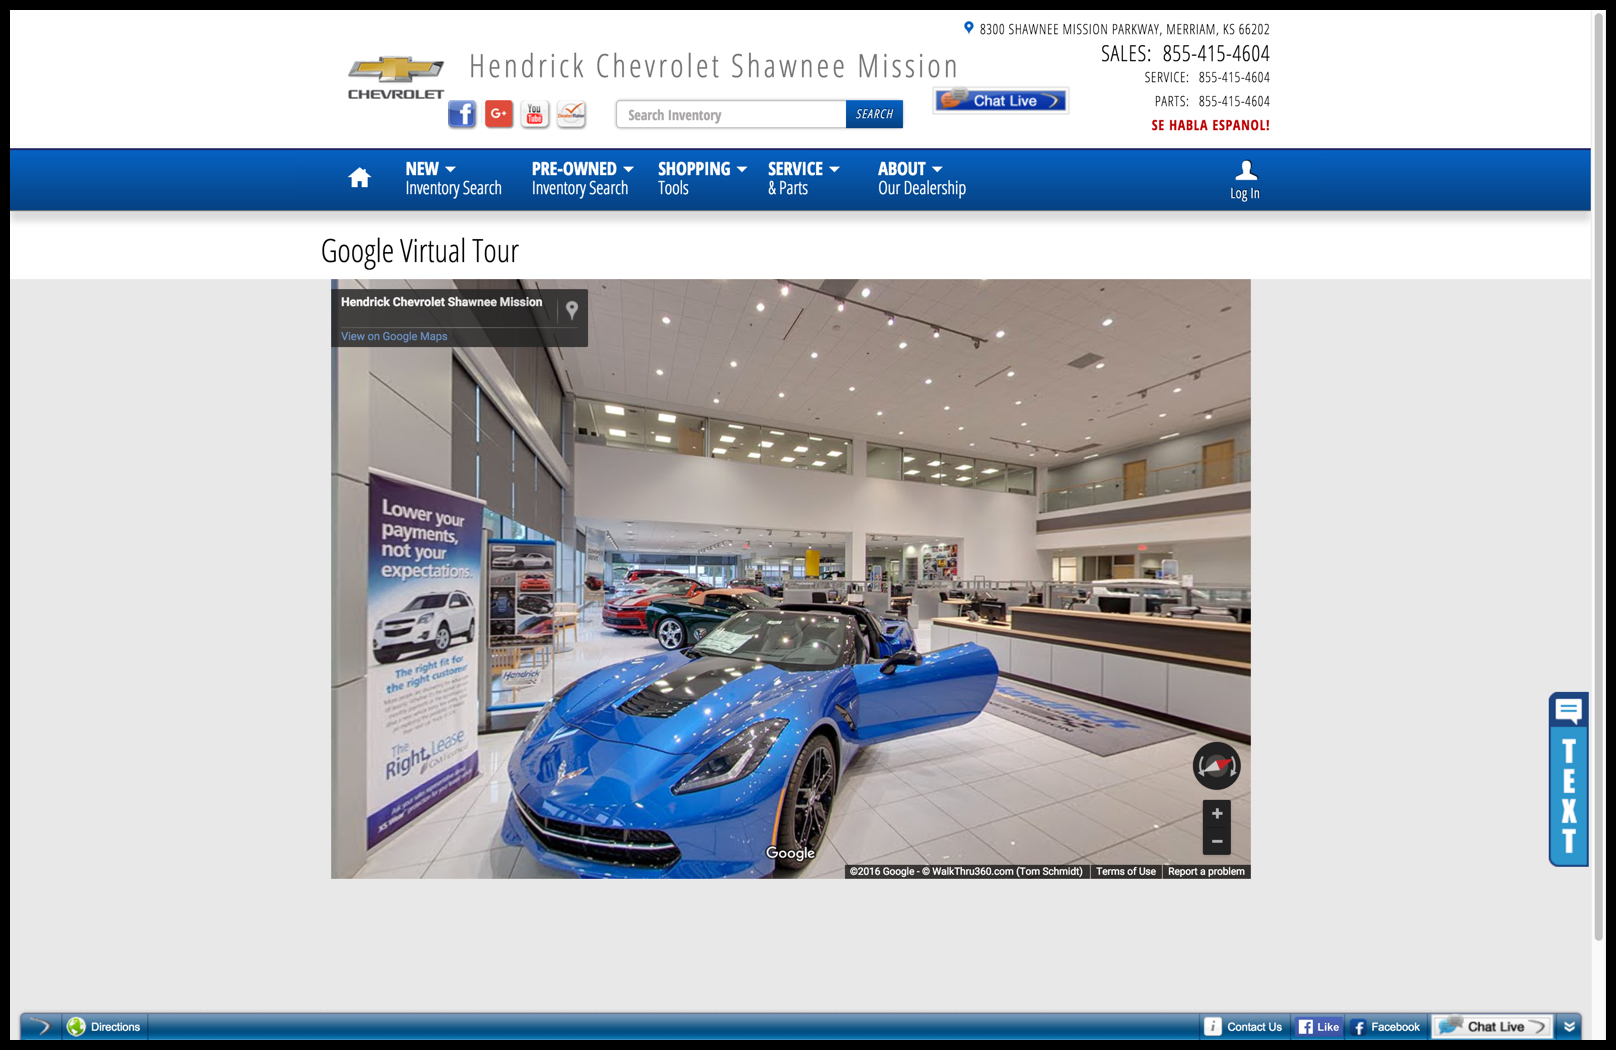 Charming Virtual Tour Embedded On The Hendrick Website